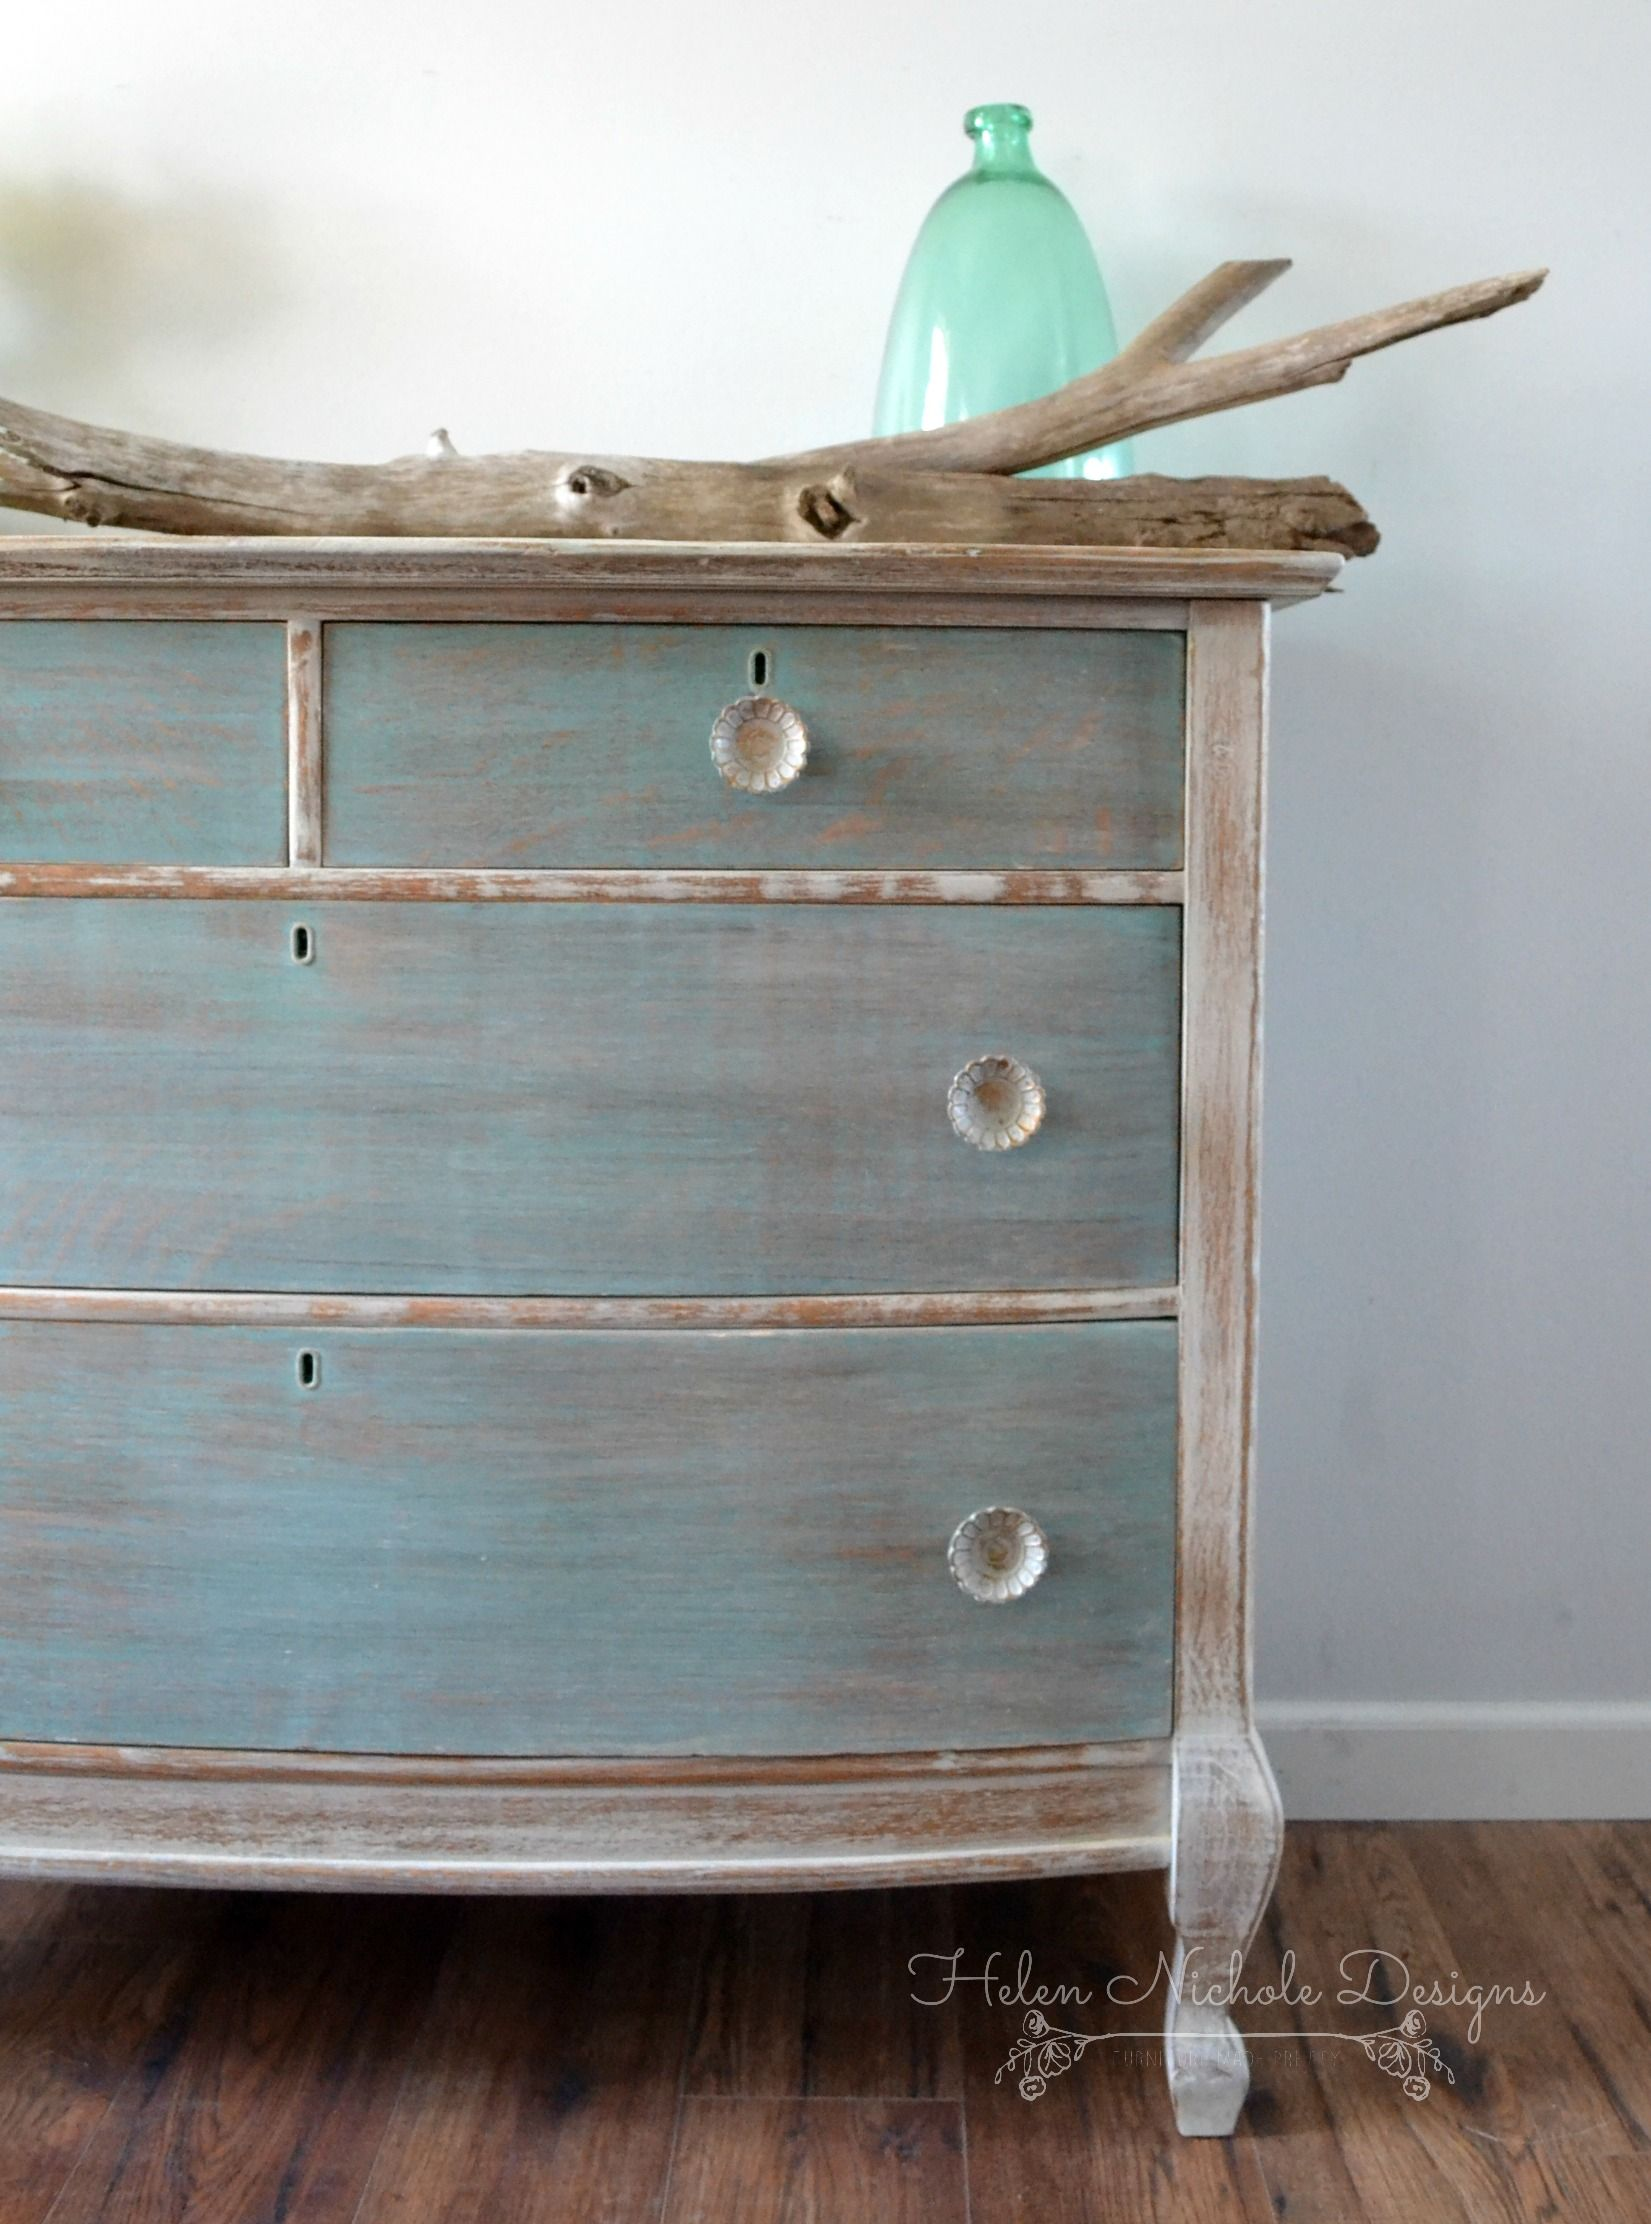 Beachy Wood Plank Dresser Helen Nichole Designs Milk Paint White Washed Furniture